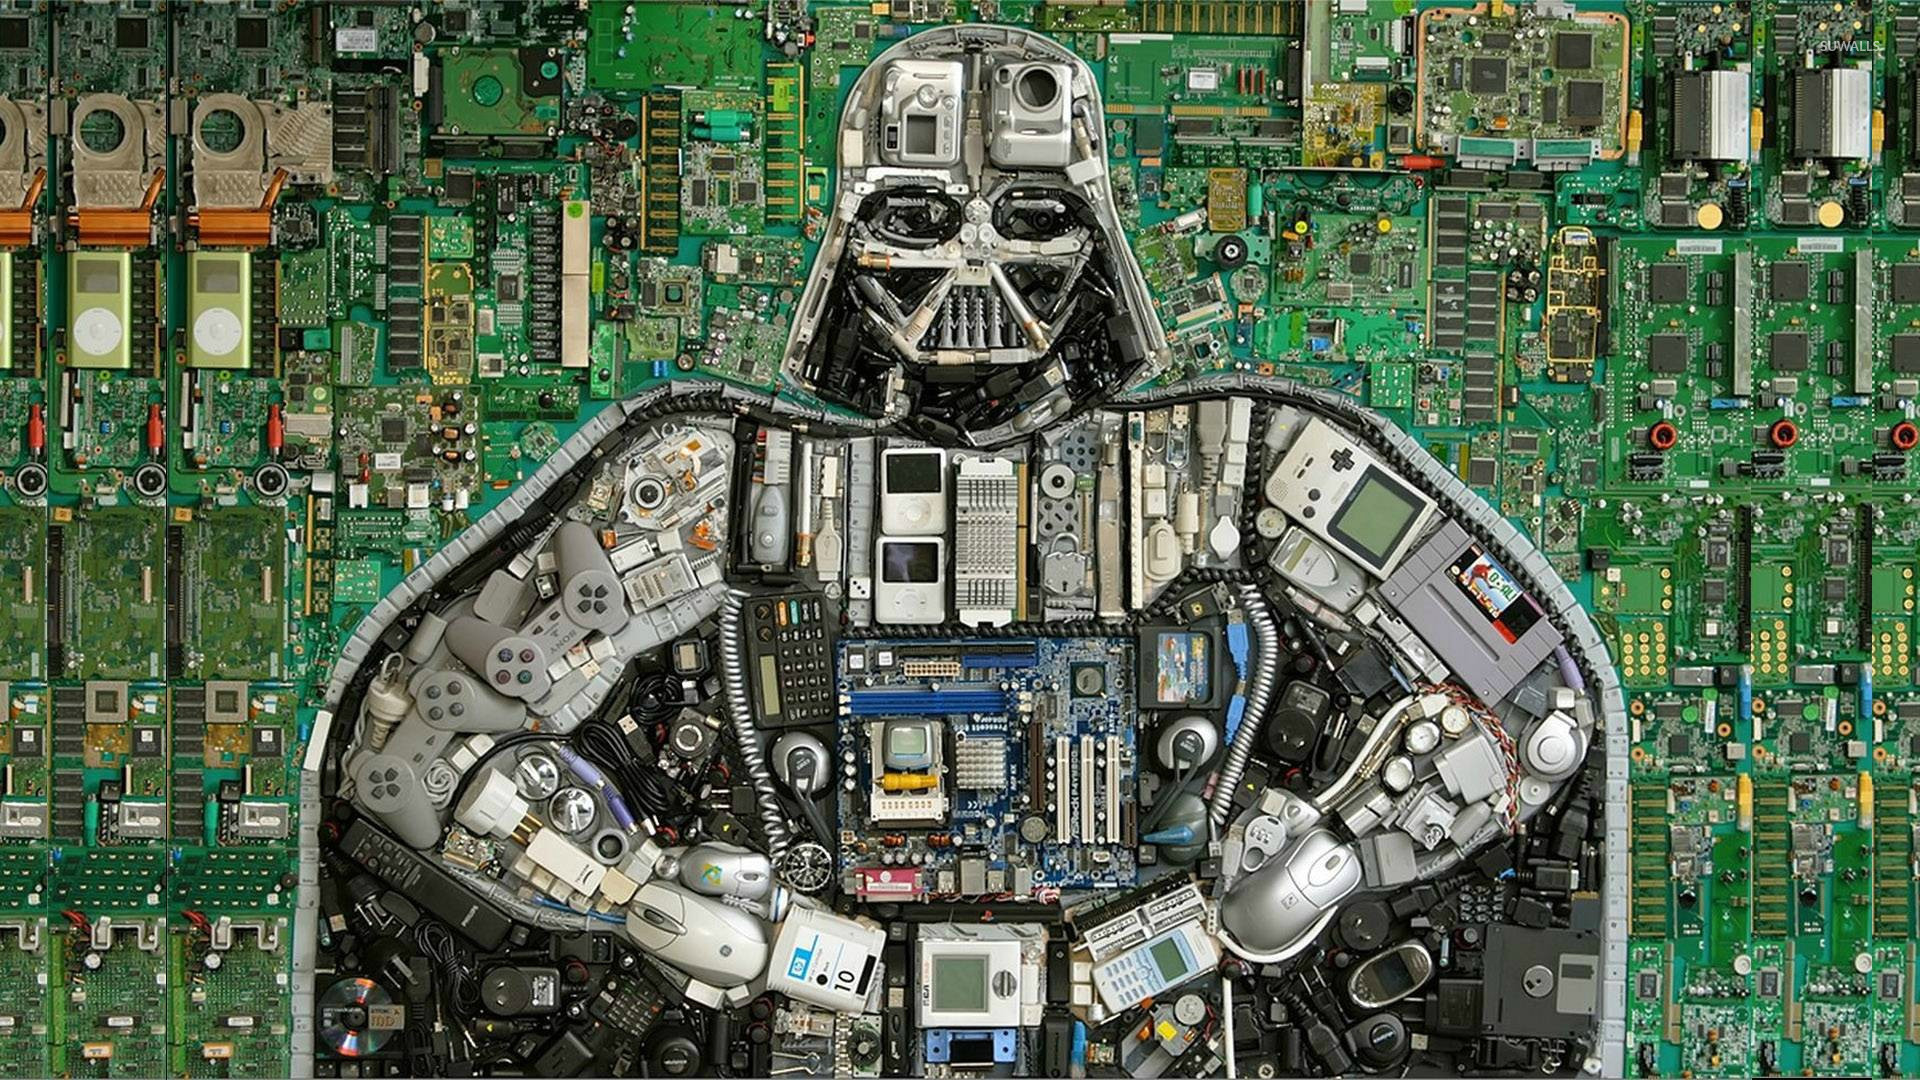 Darth Vader out of puter parts wallpaper puter wallpapers